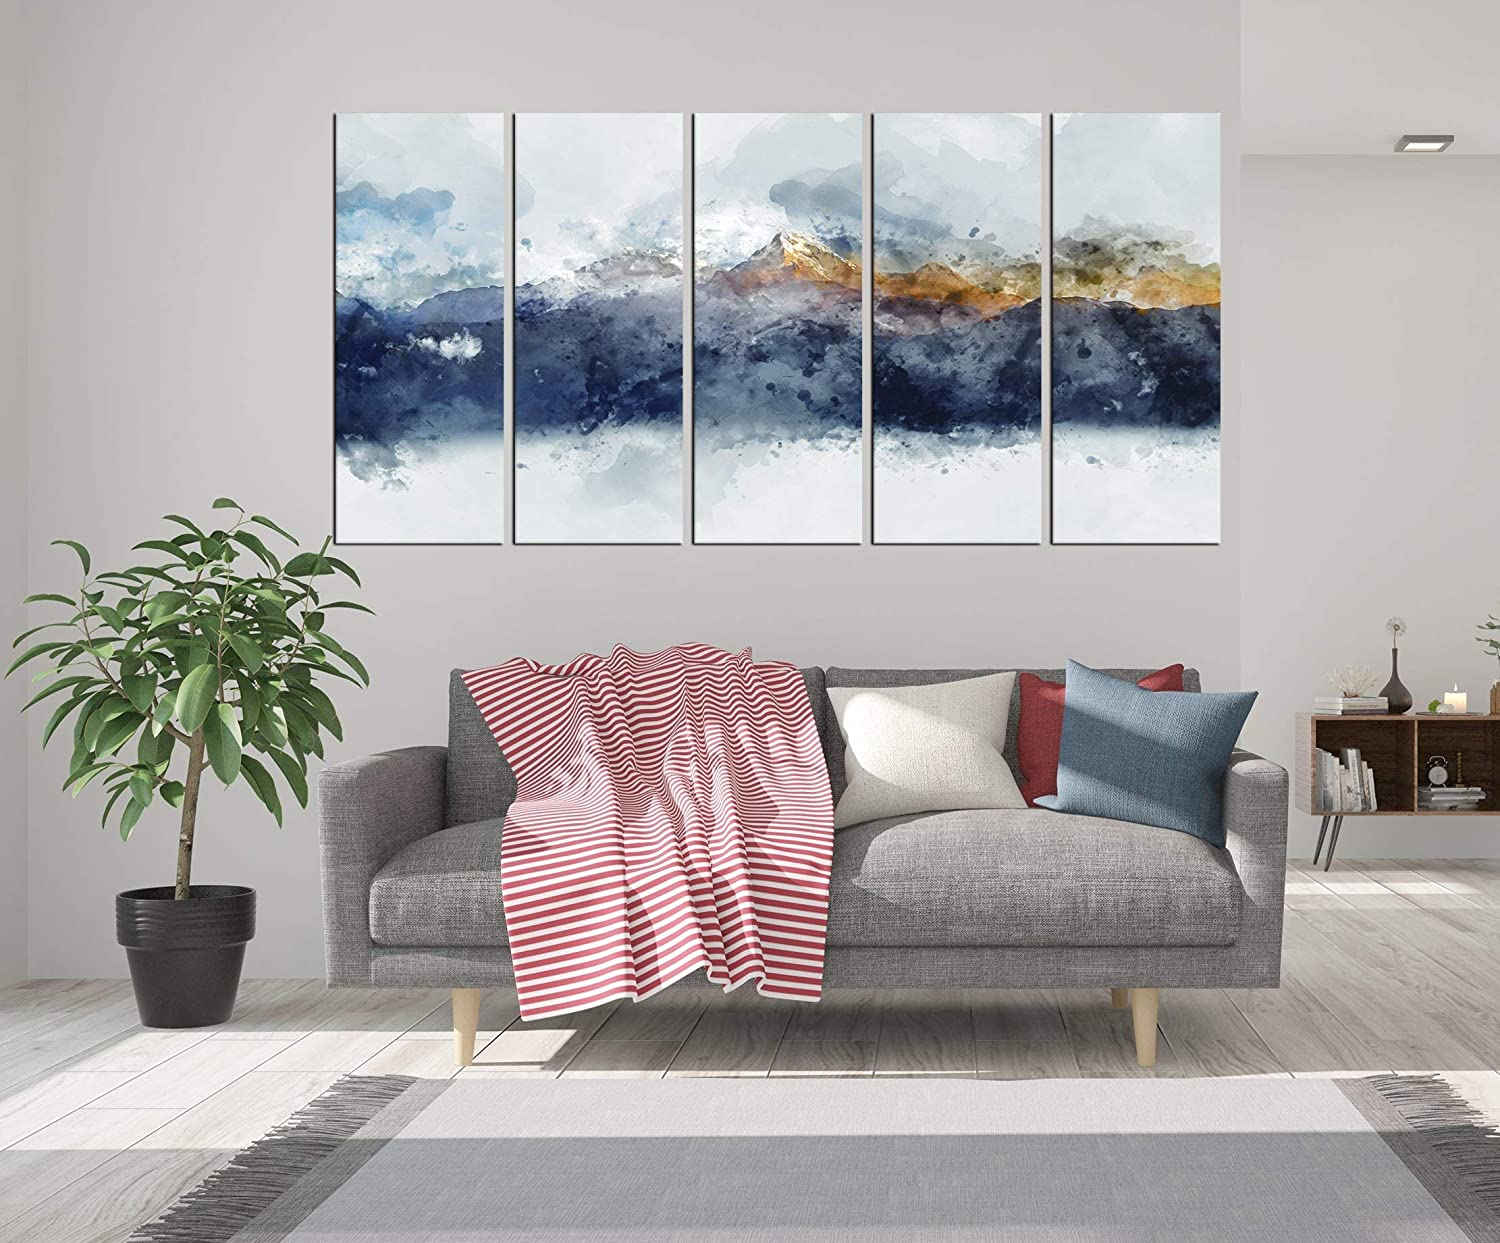 Gallery from Trend Large Wall Decor Central @house2homegoods.net